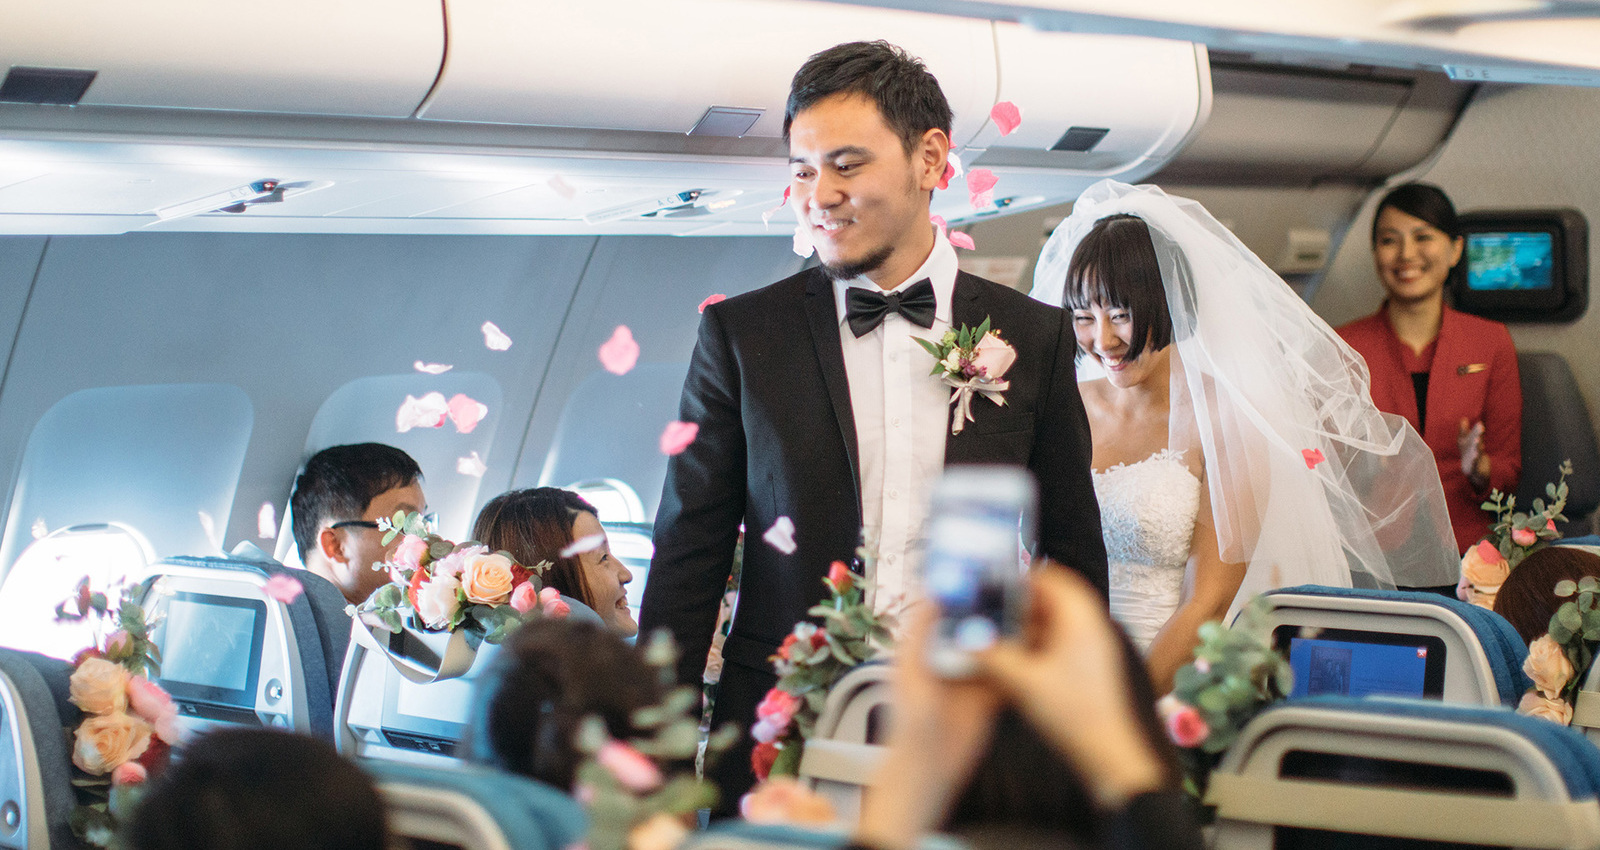 Marriage in the Air – Cathay Pacific and Cathay Dragon